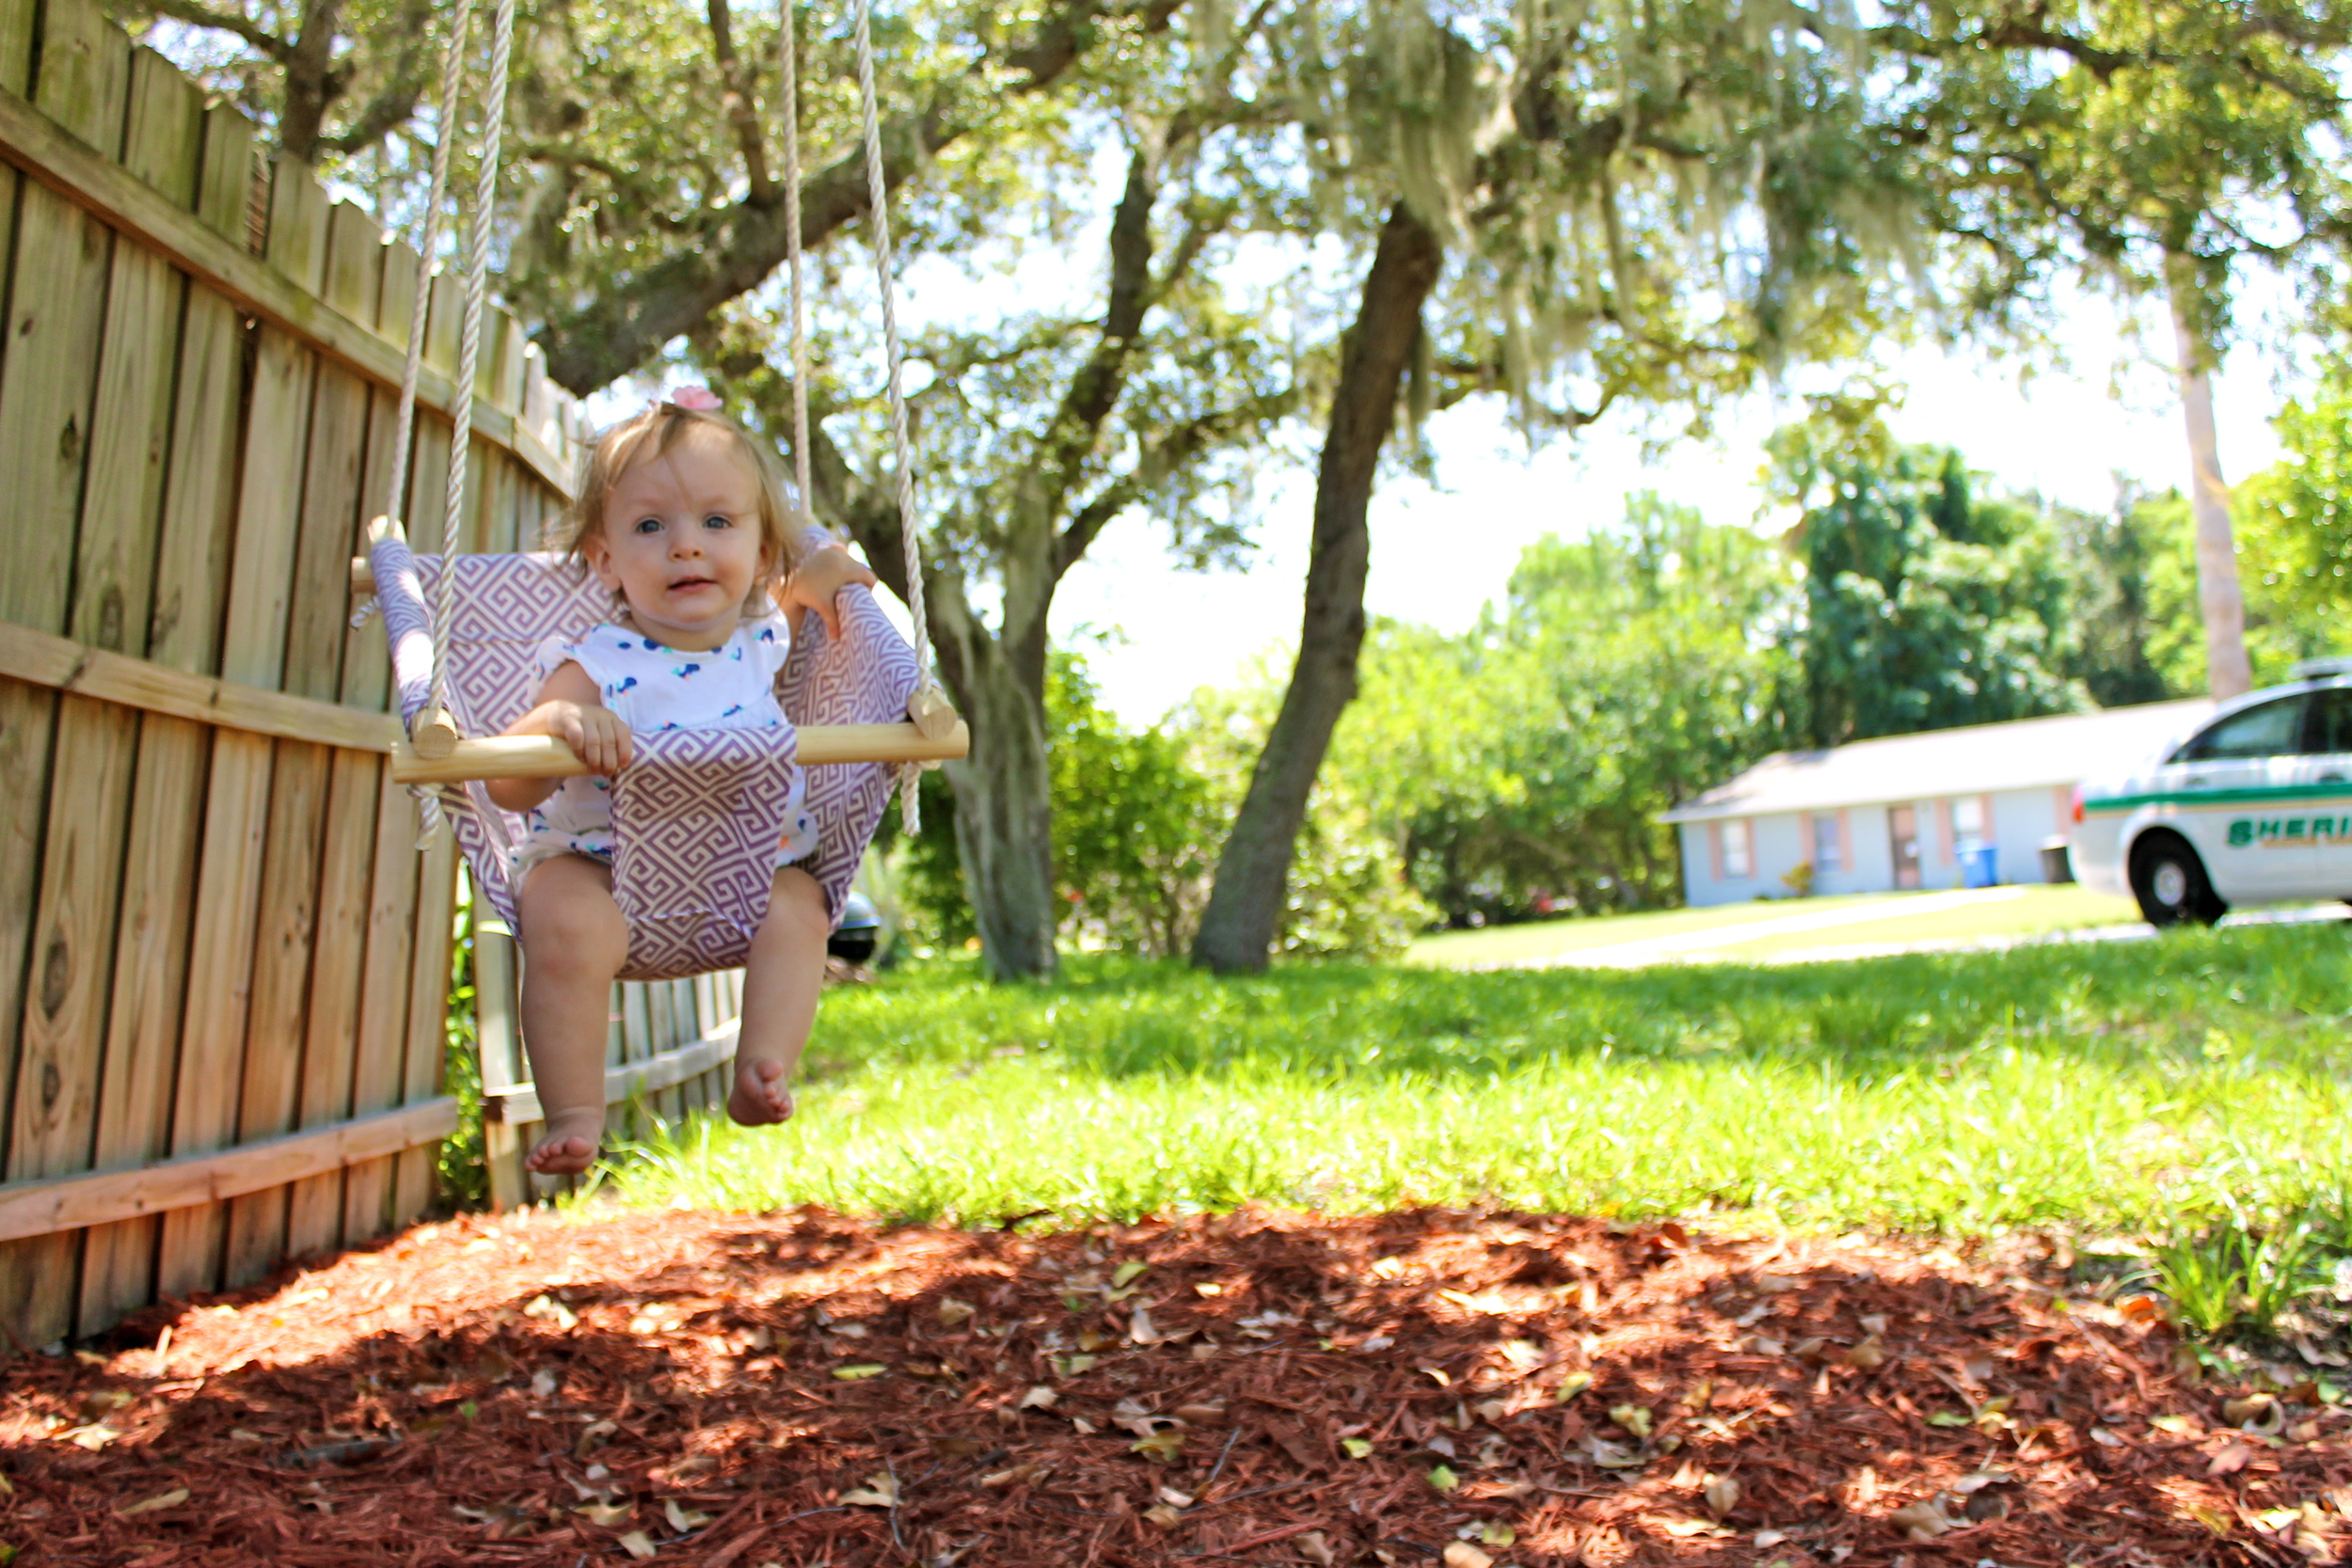 Evie's first birthday and homemade swing